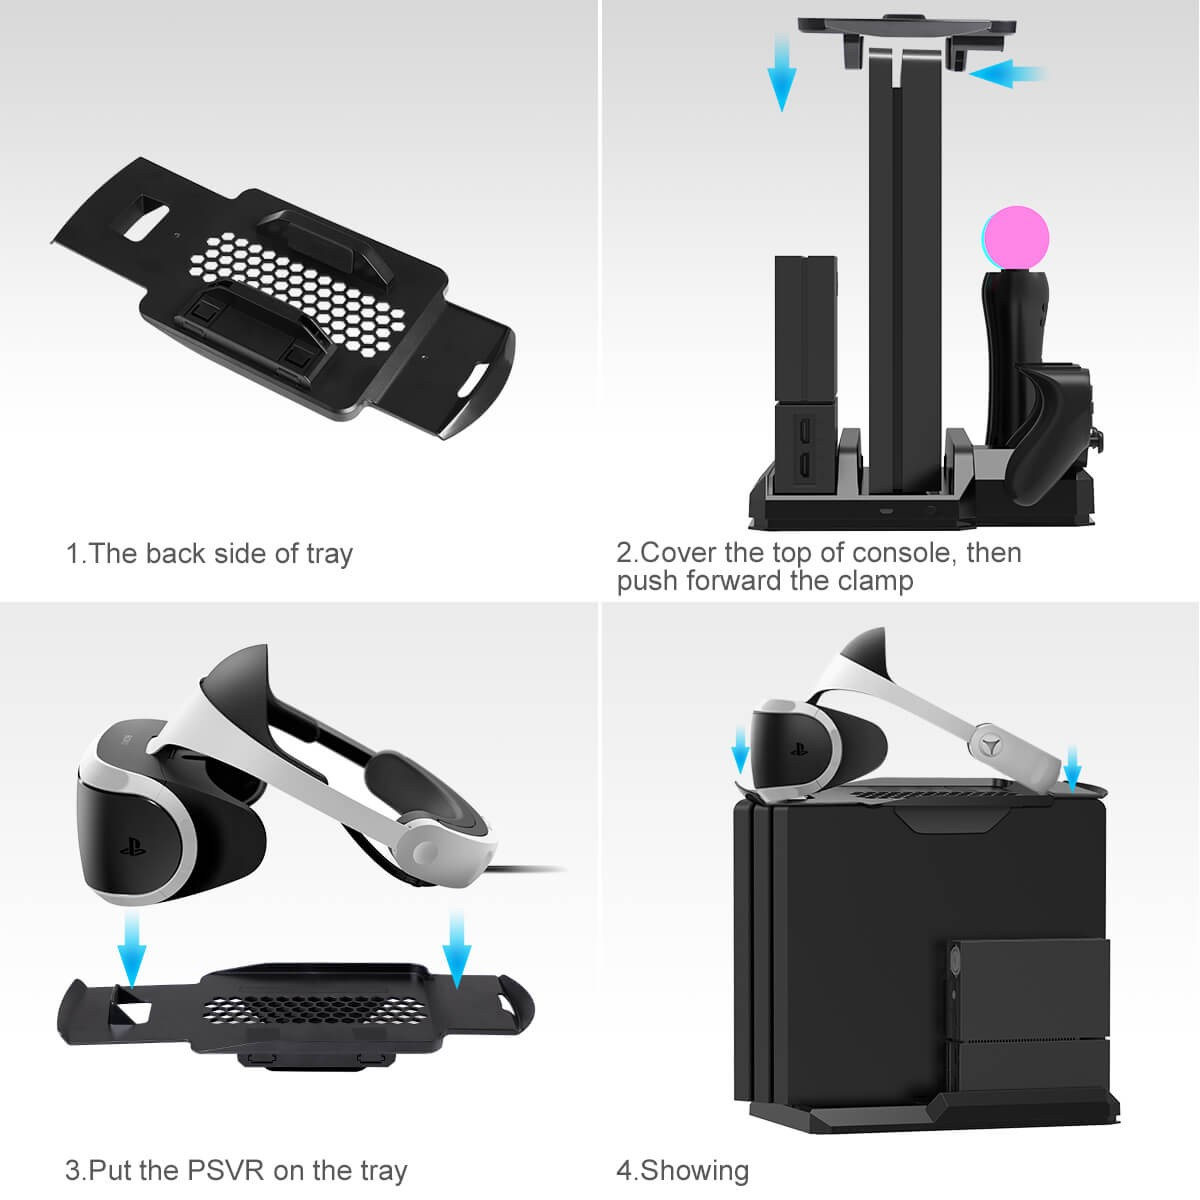 Kootek Charging Stand With Cooling Fan For Playstation Vr Move Motion Controllers Fit For Ps4 Slim Pro Regular Ps4 Console With Dualshock 4 Wireless Controller Ext Port Charger Cuh Zvr2 1 Kootek Official